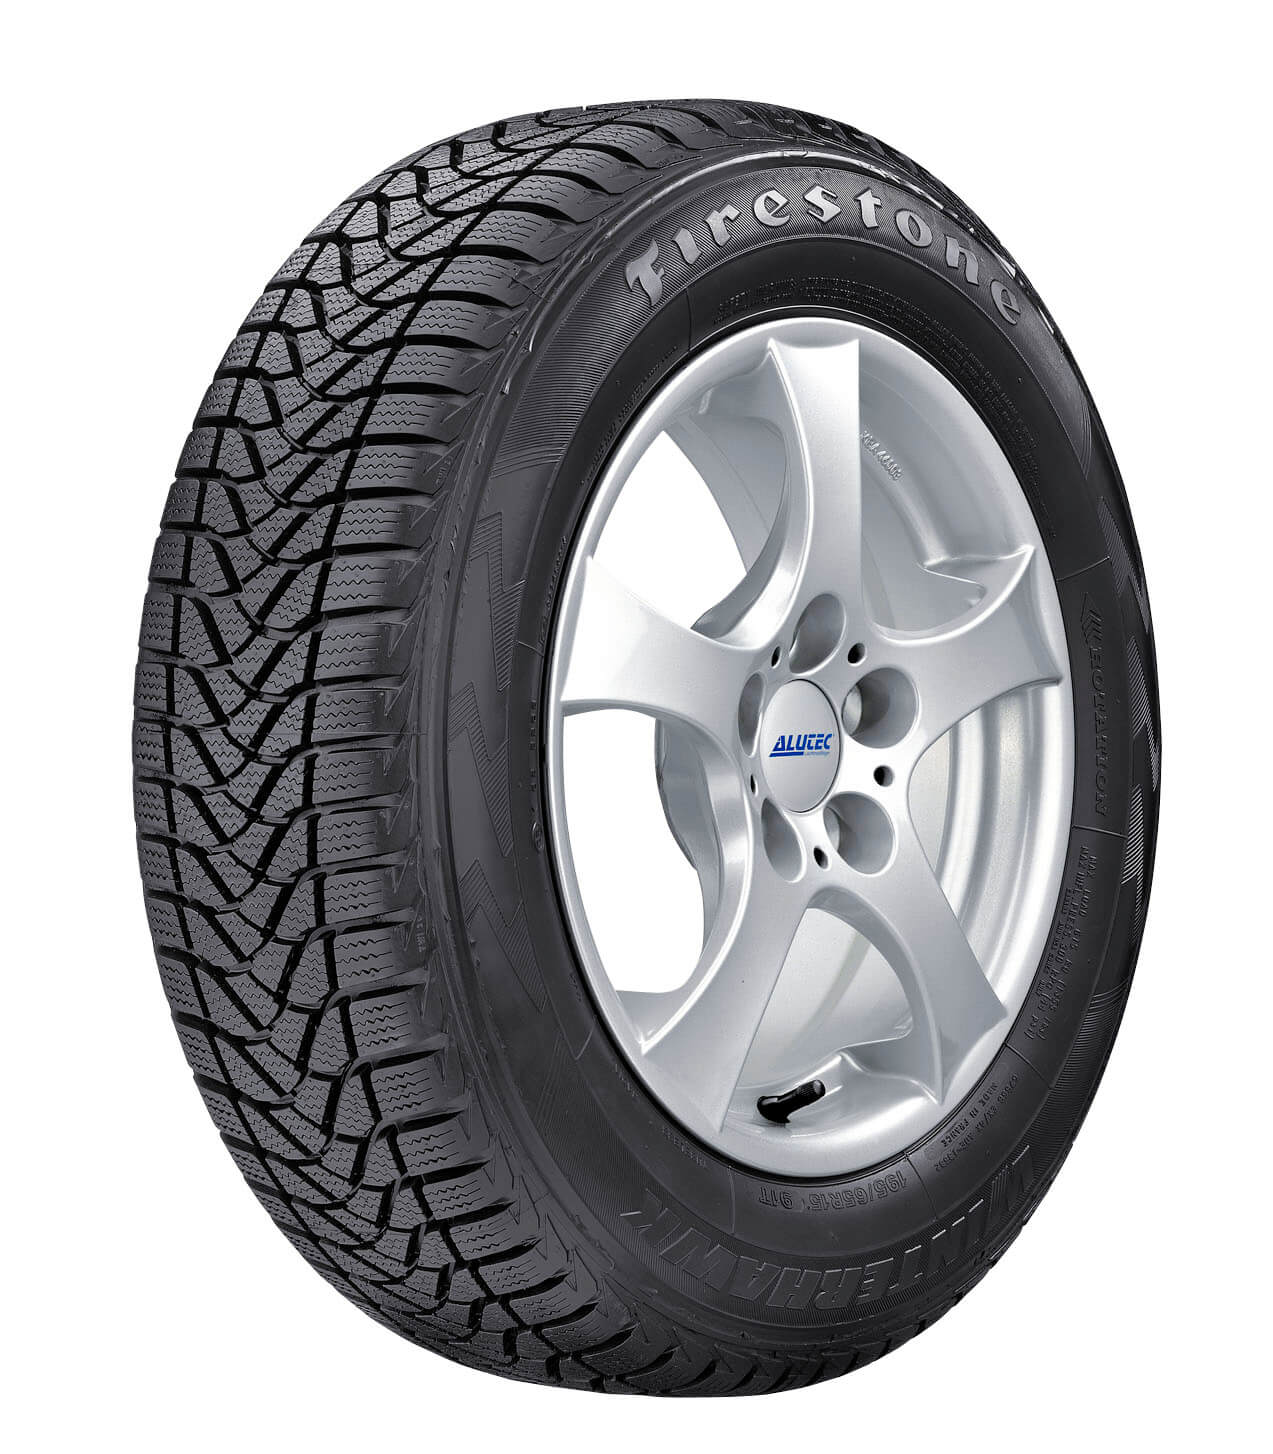 Firestone WinterHawk 175/70 R13